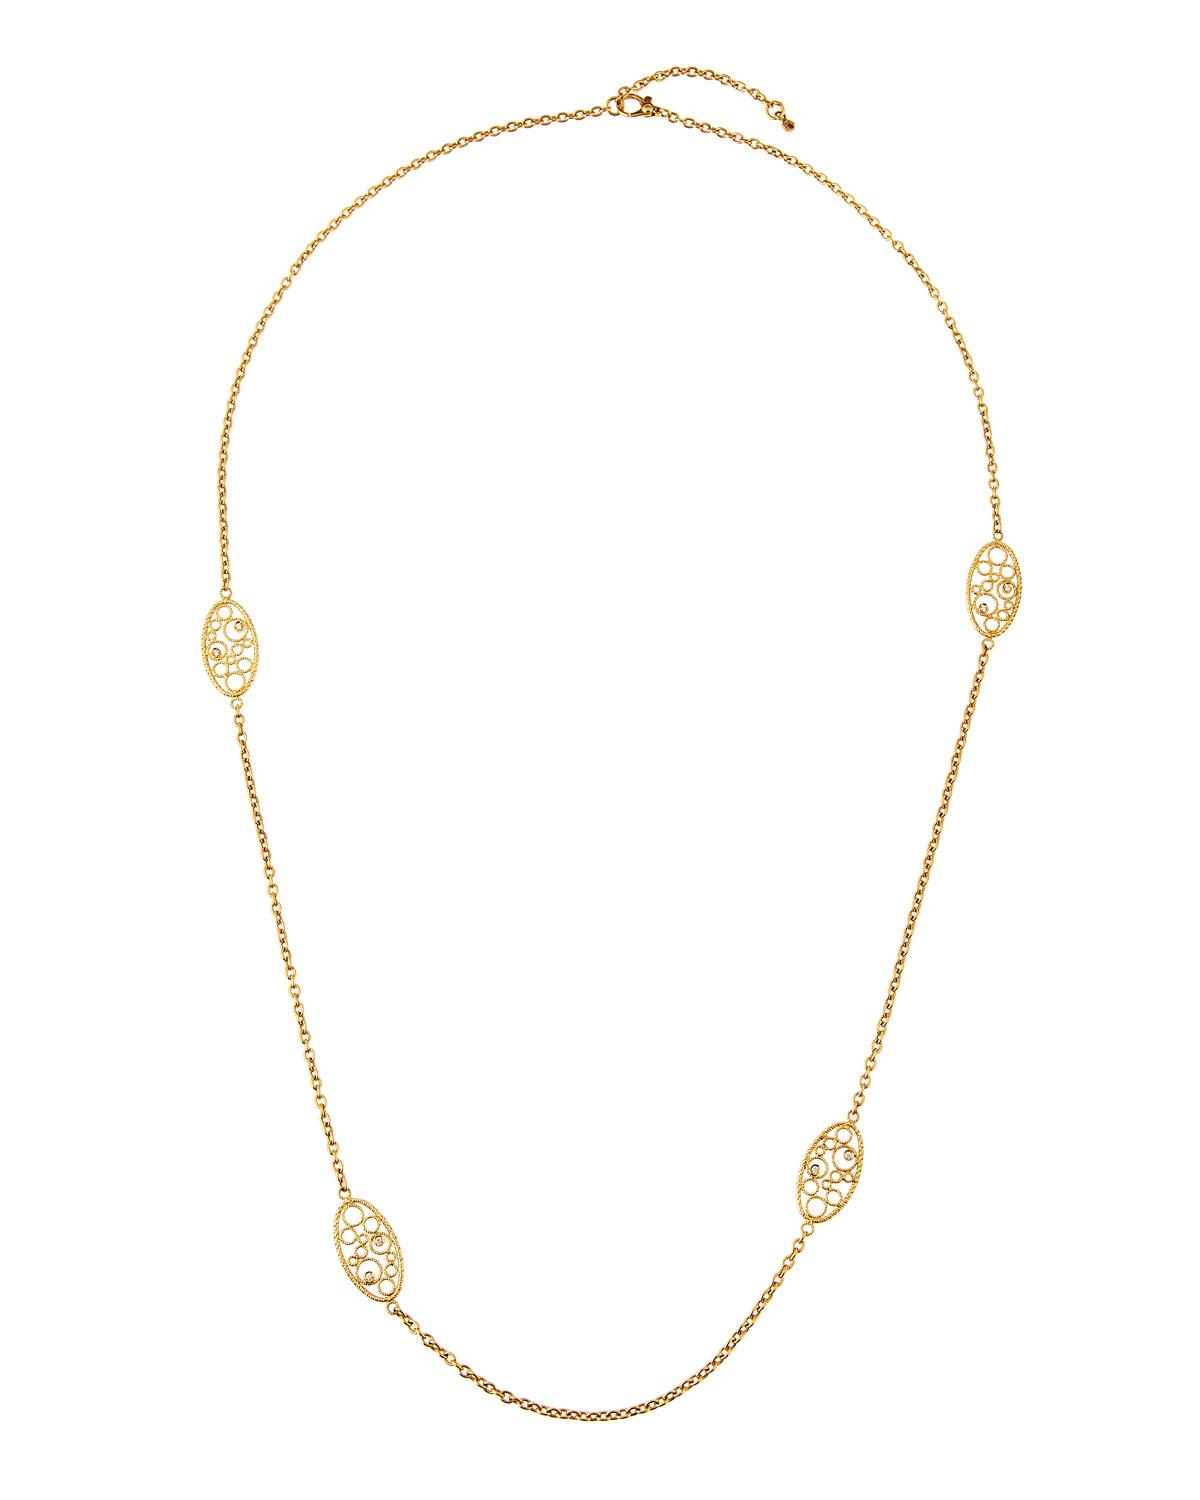 Roberto Coin Bollicine 18k Yellow Gold Long 2-Station Necklace tMJlf0C